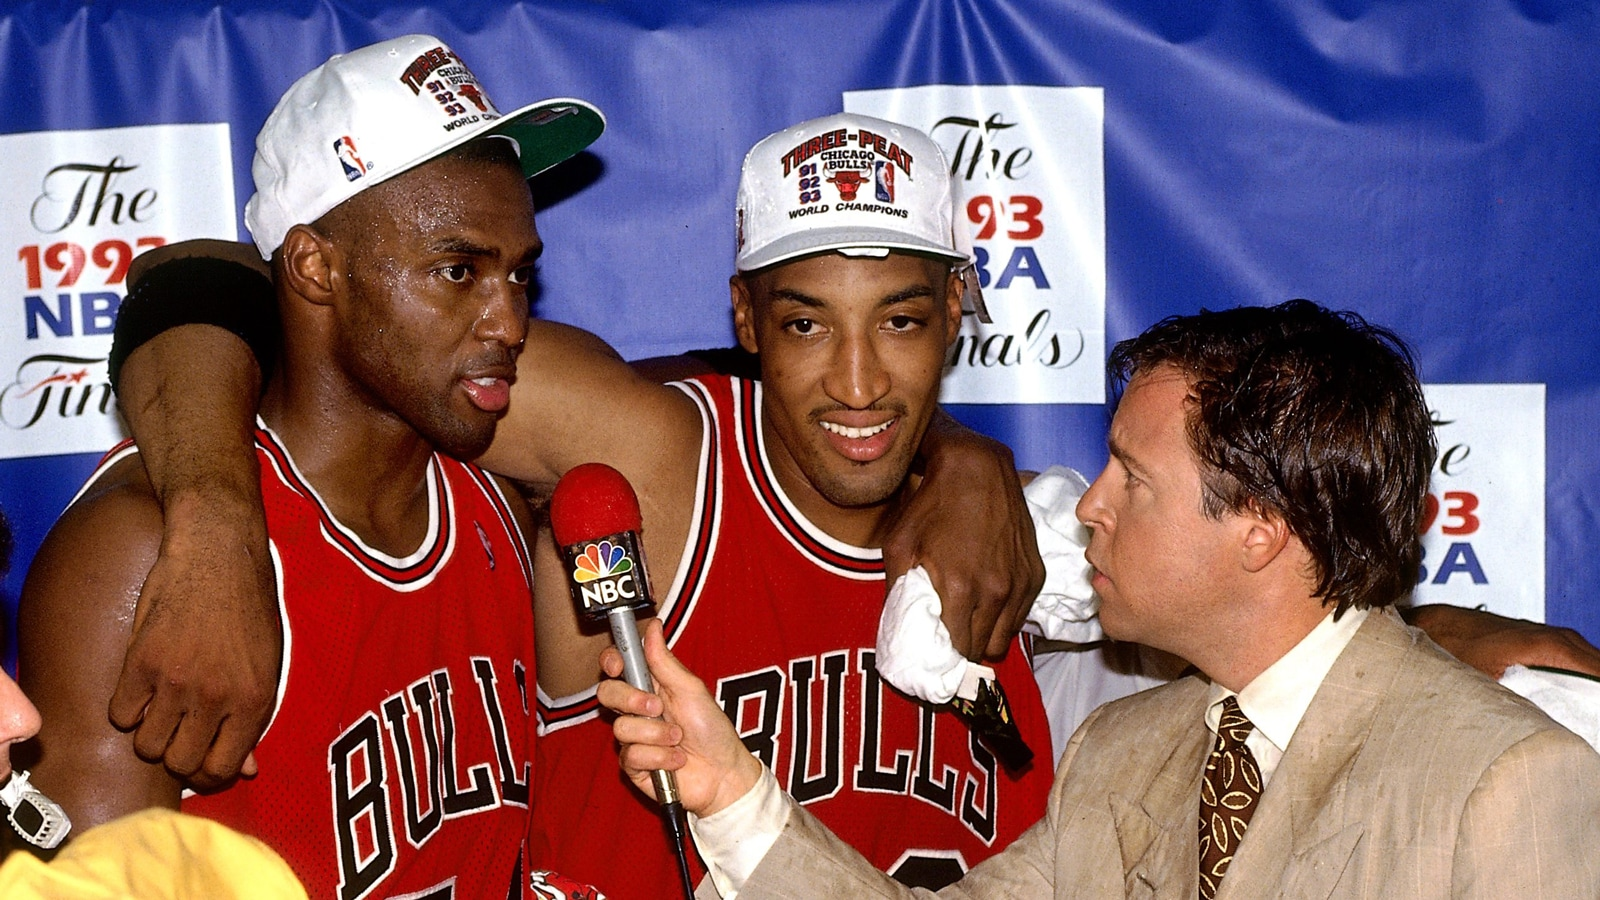 Horace Grant and Scottie Pippen being interviewed by Bob Costas following the Bulls' third championship